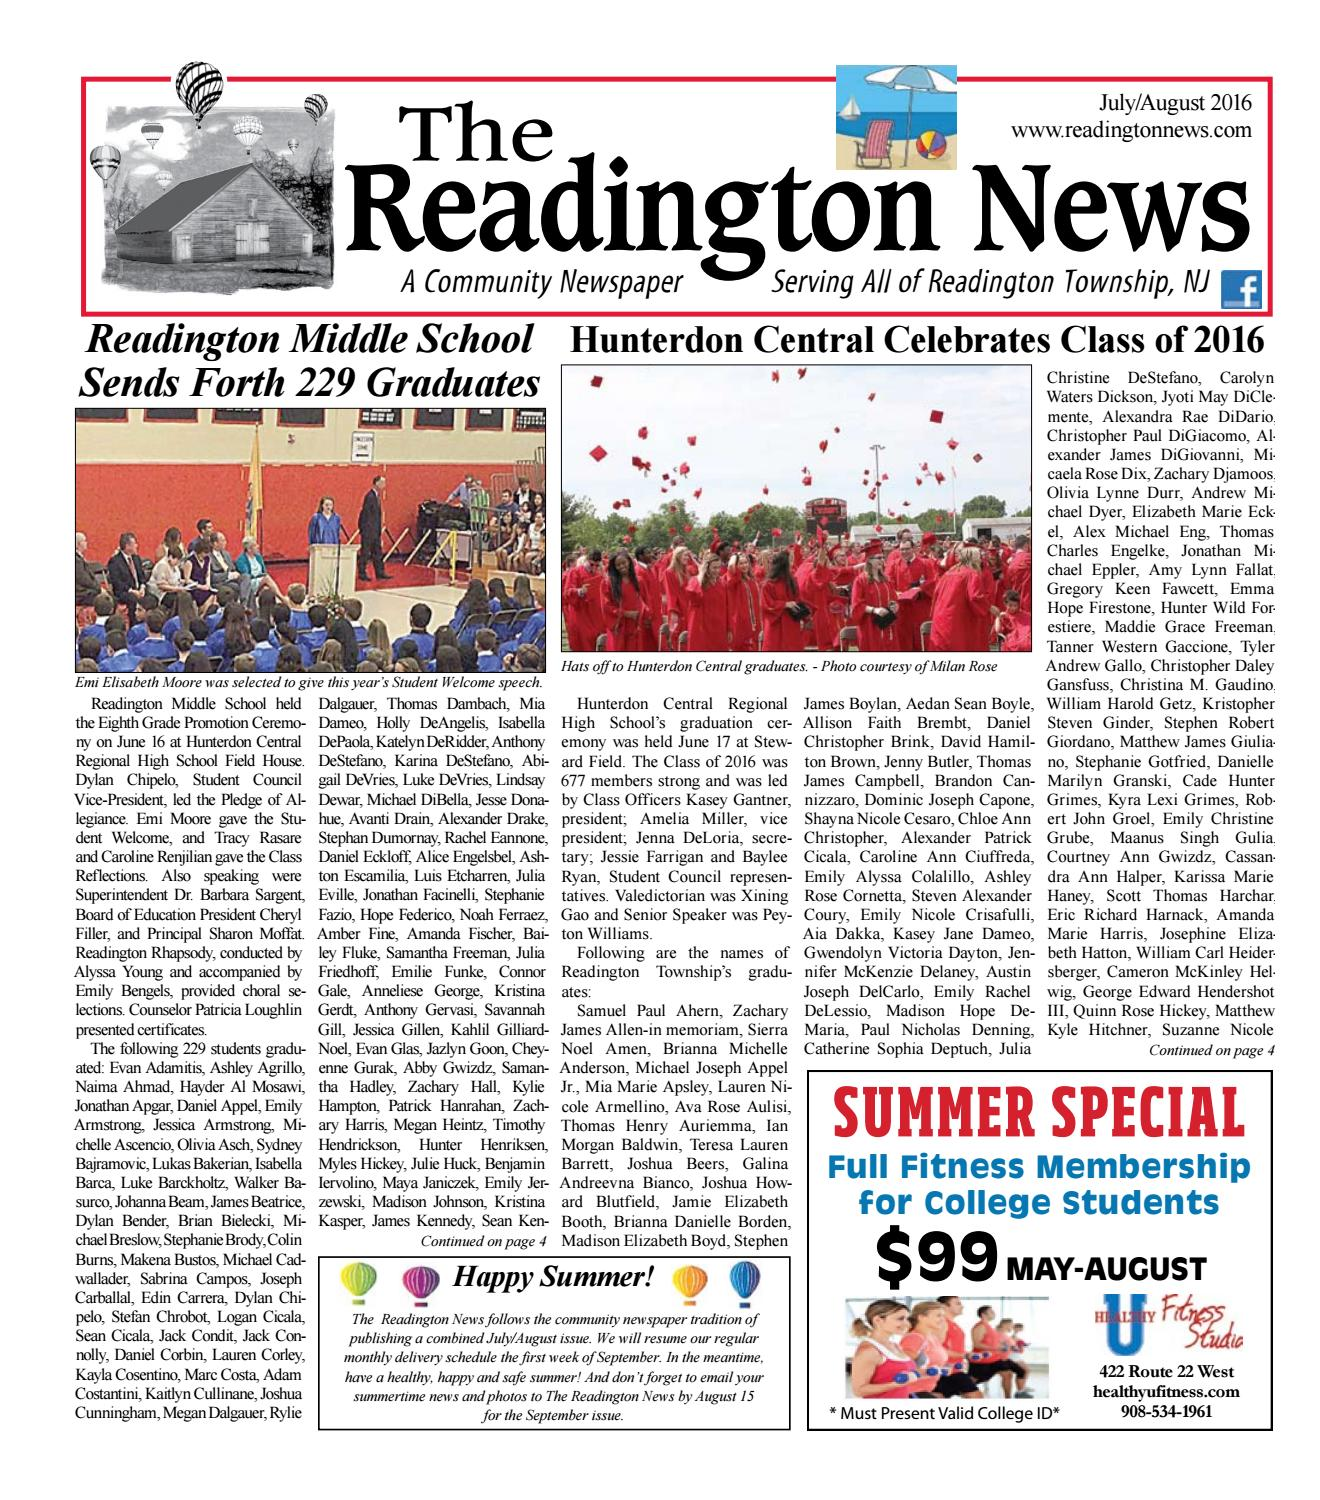 Middle School Hal Monthly News: Rd 0716 Web By Town Media